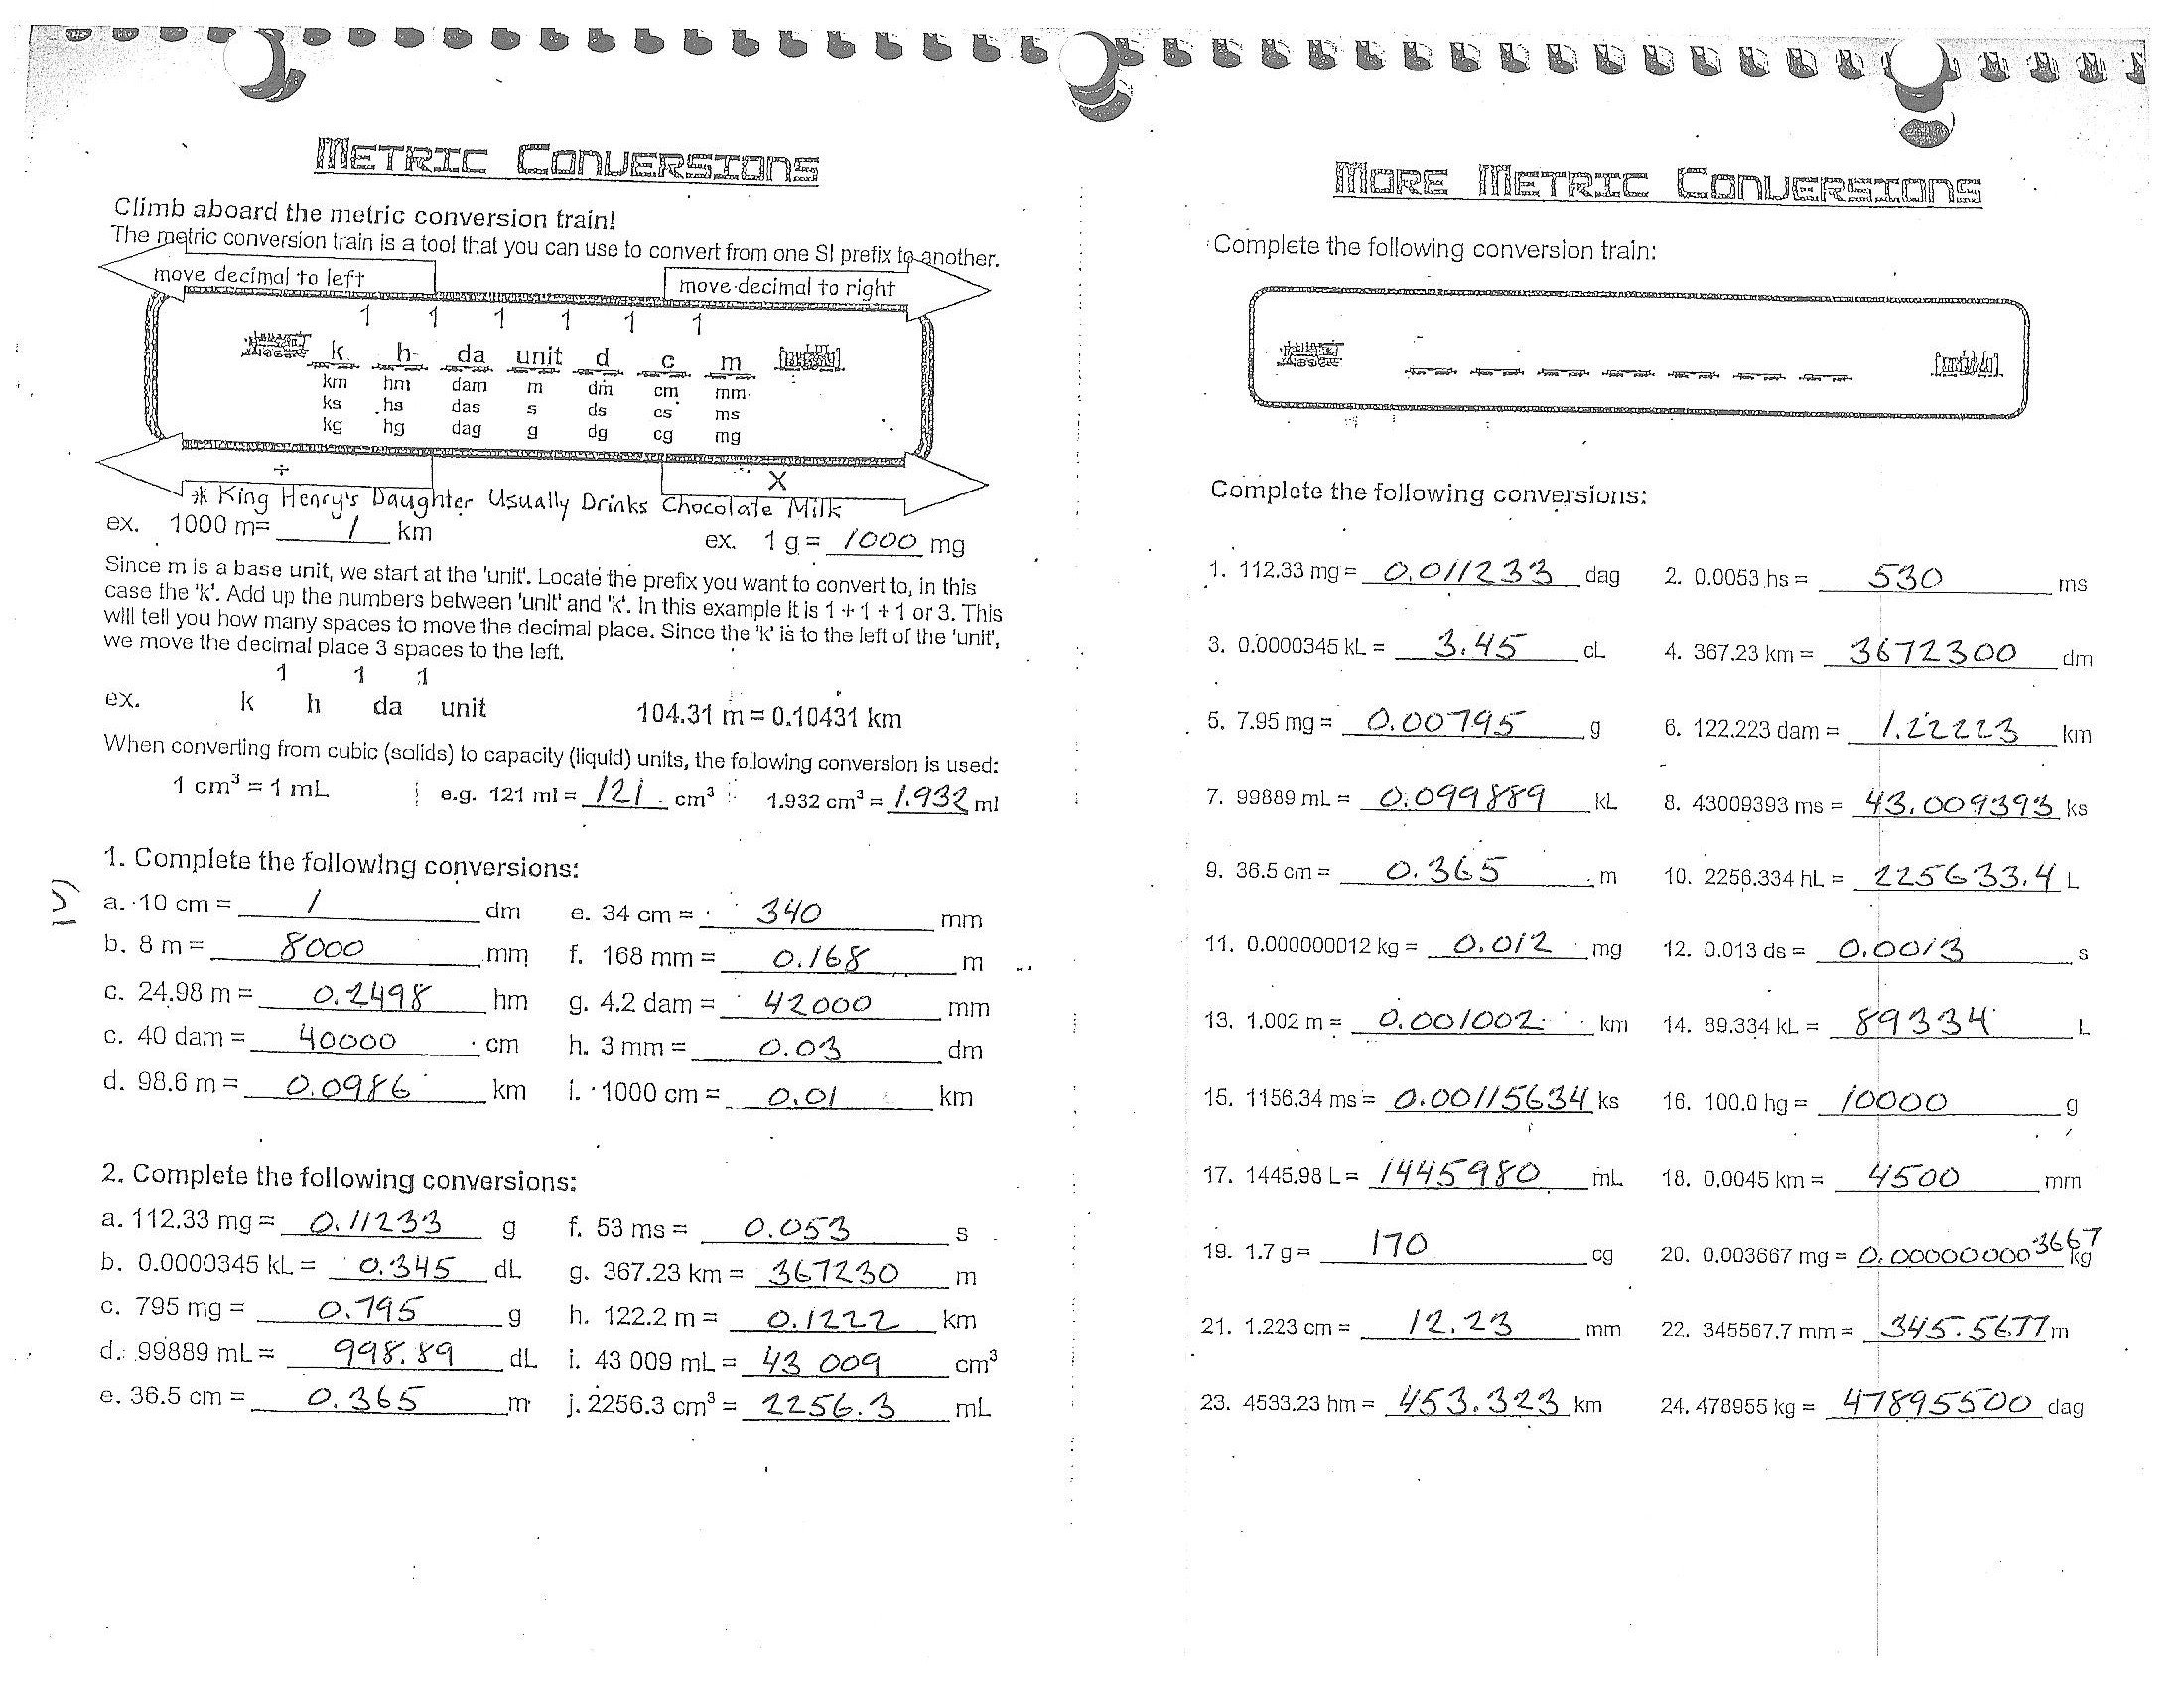 metric system conversion worksheet answers